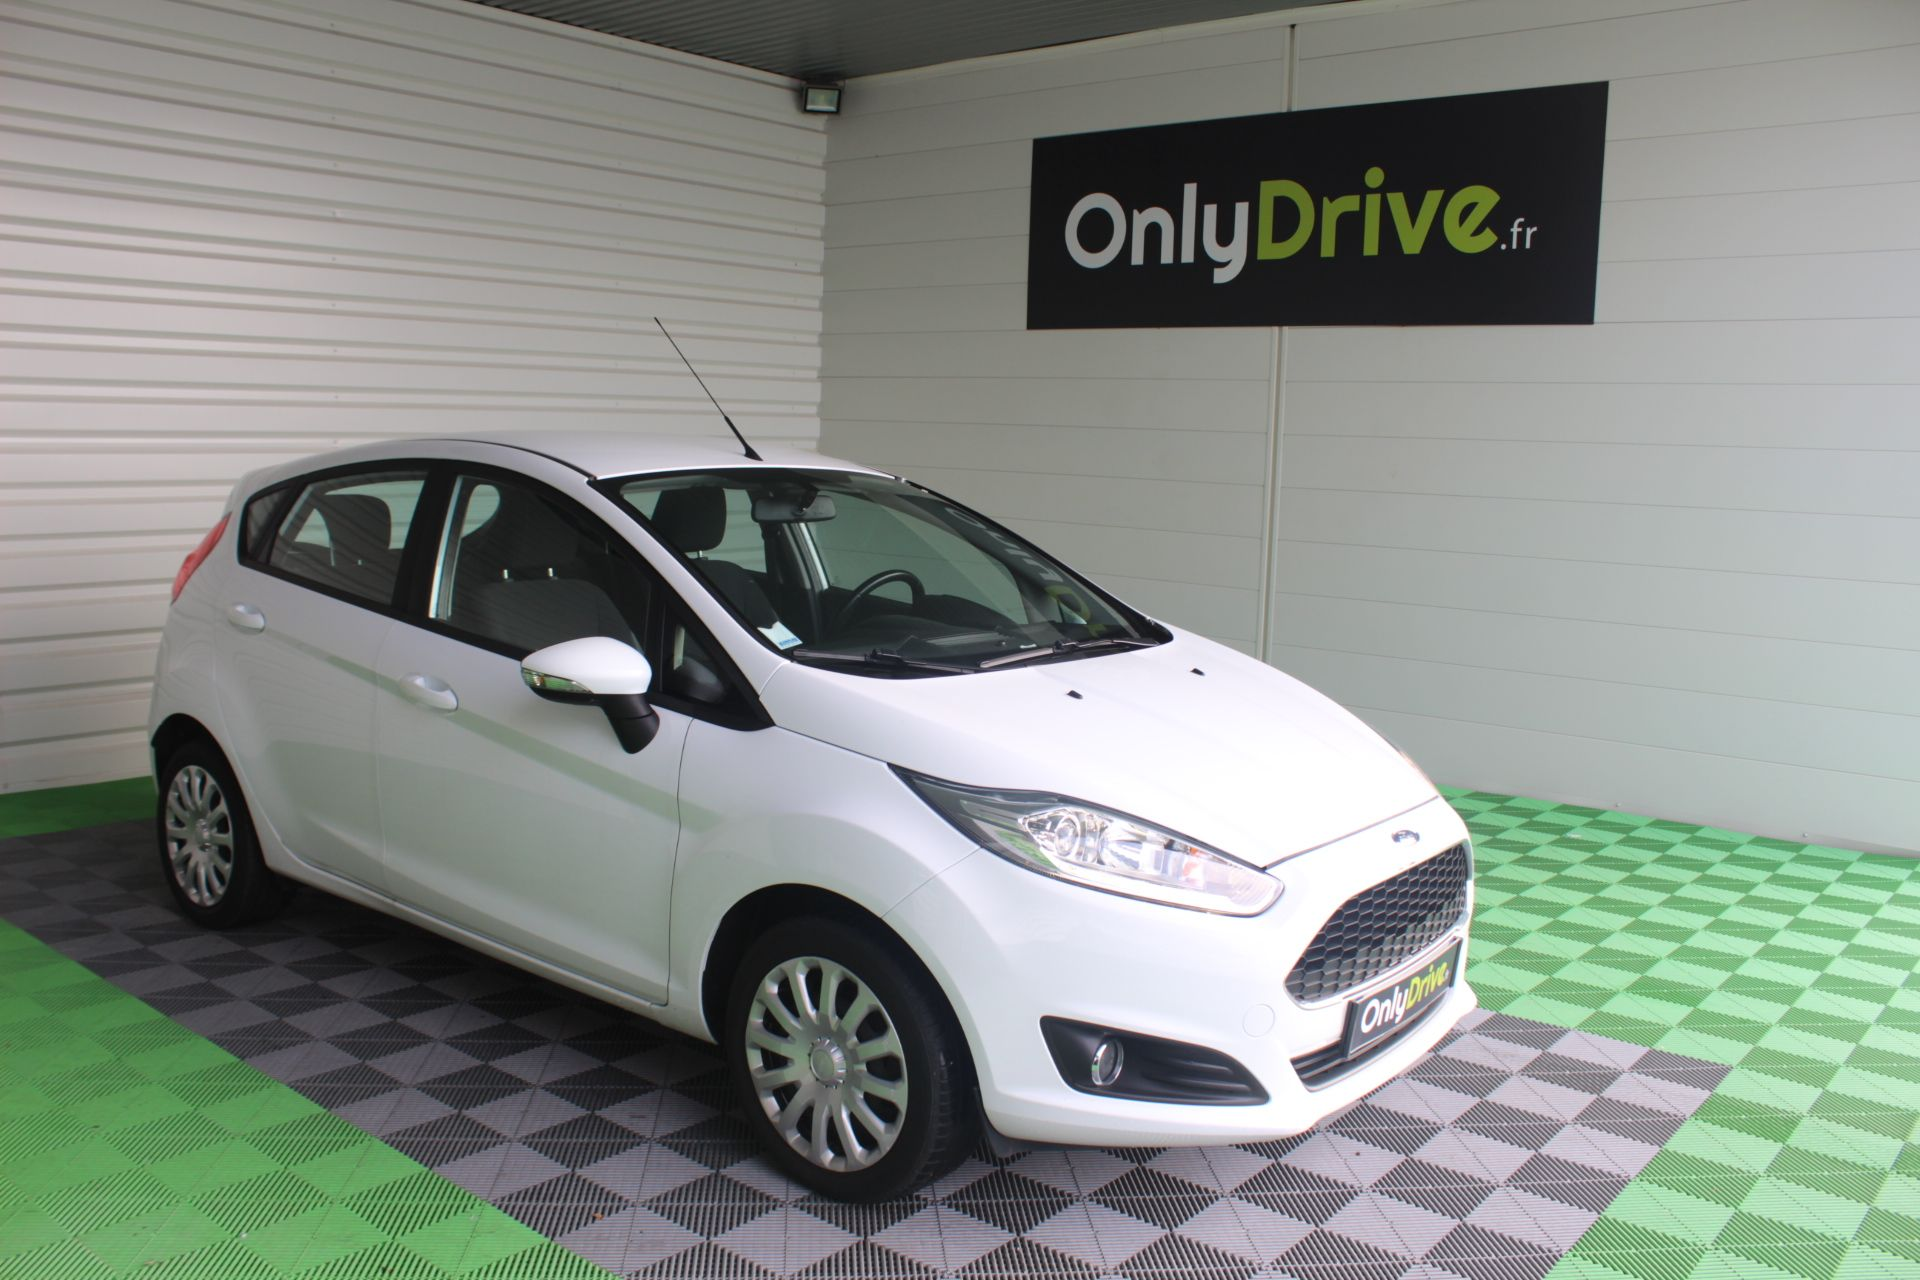 Ford Fiesta 1 5 Tdci 75ch S S Edition Blanc 2016 Vehicule Ford